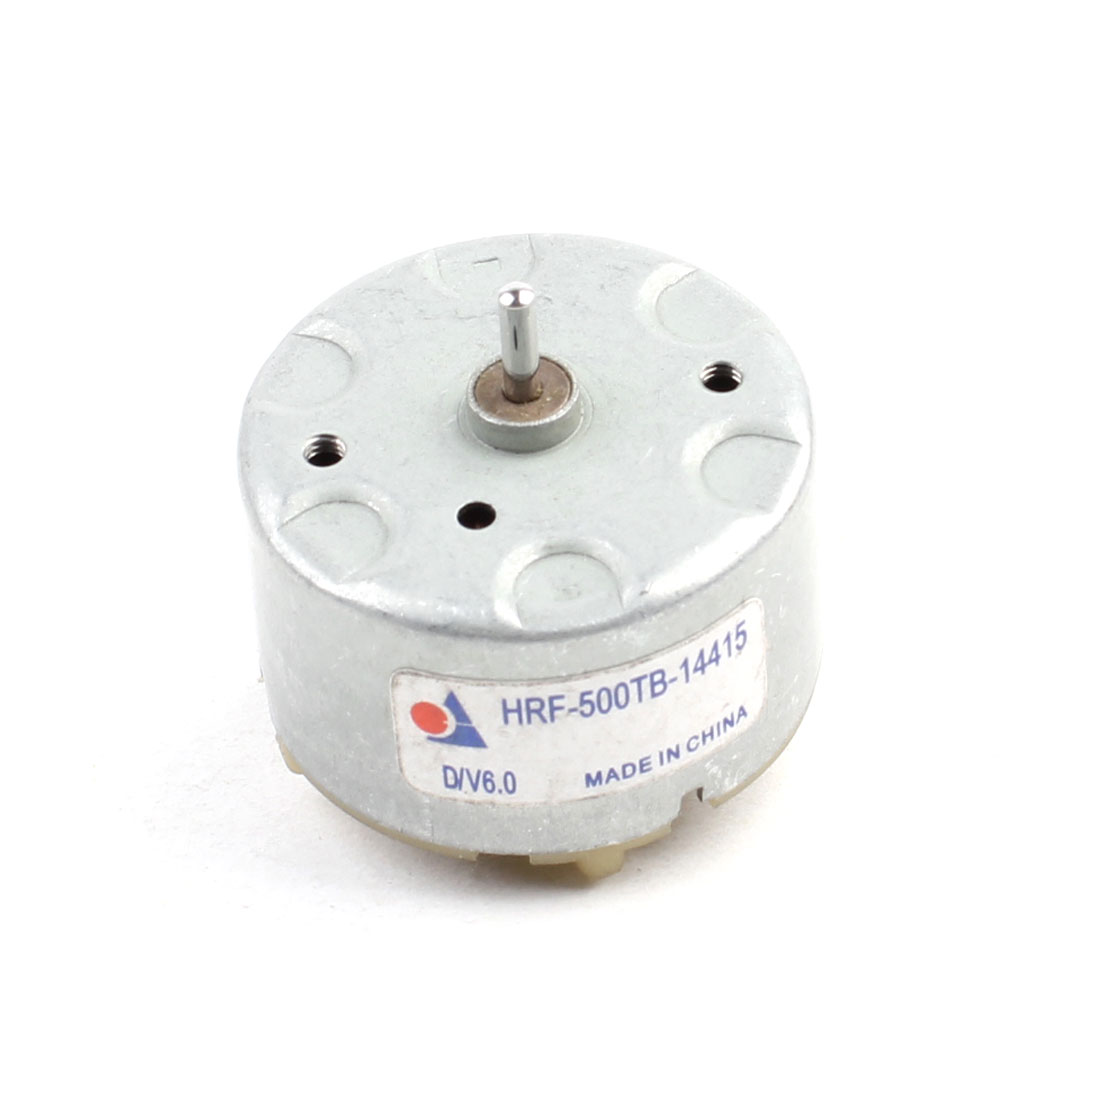 2mm Shaft 32mm Diameter Silver Tone Electric Motor 3700 RPM DC 6V